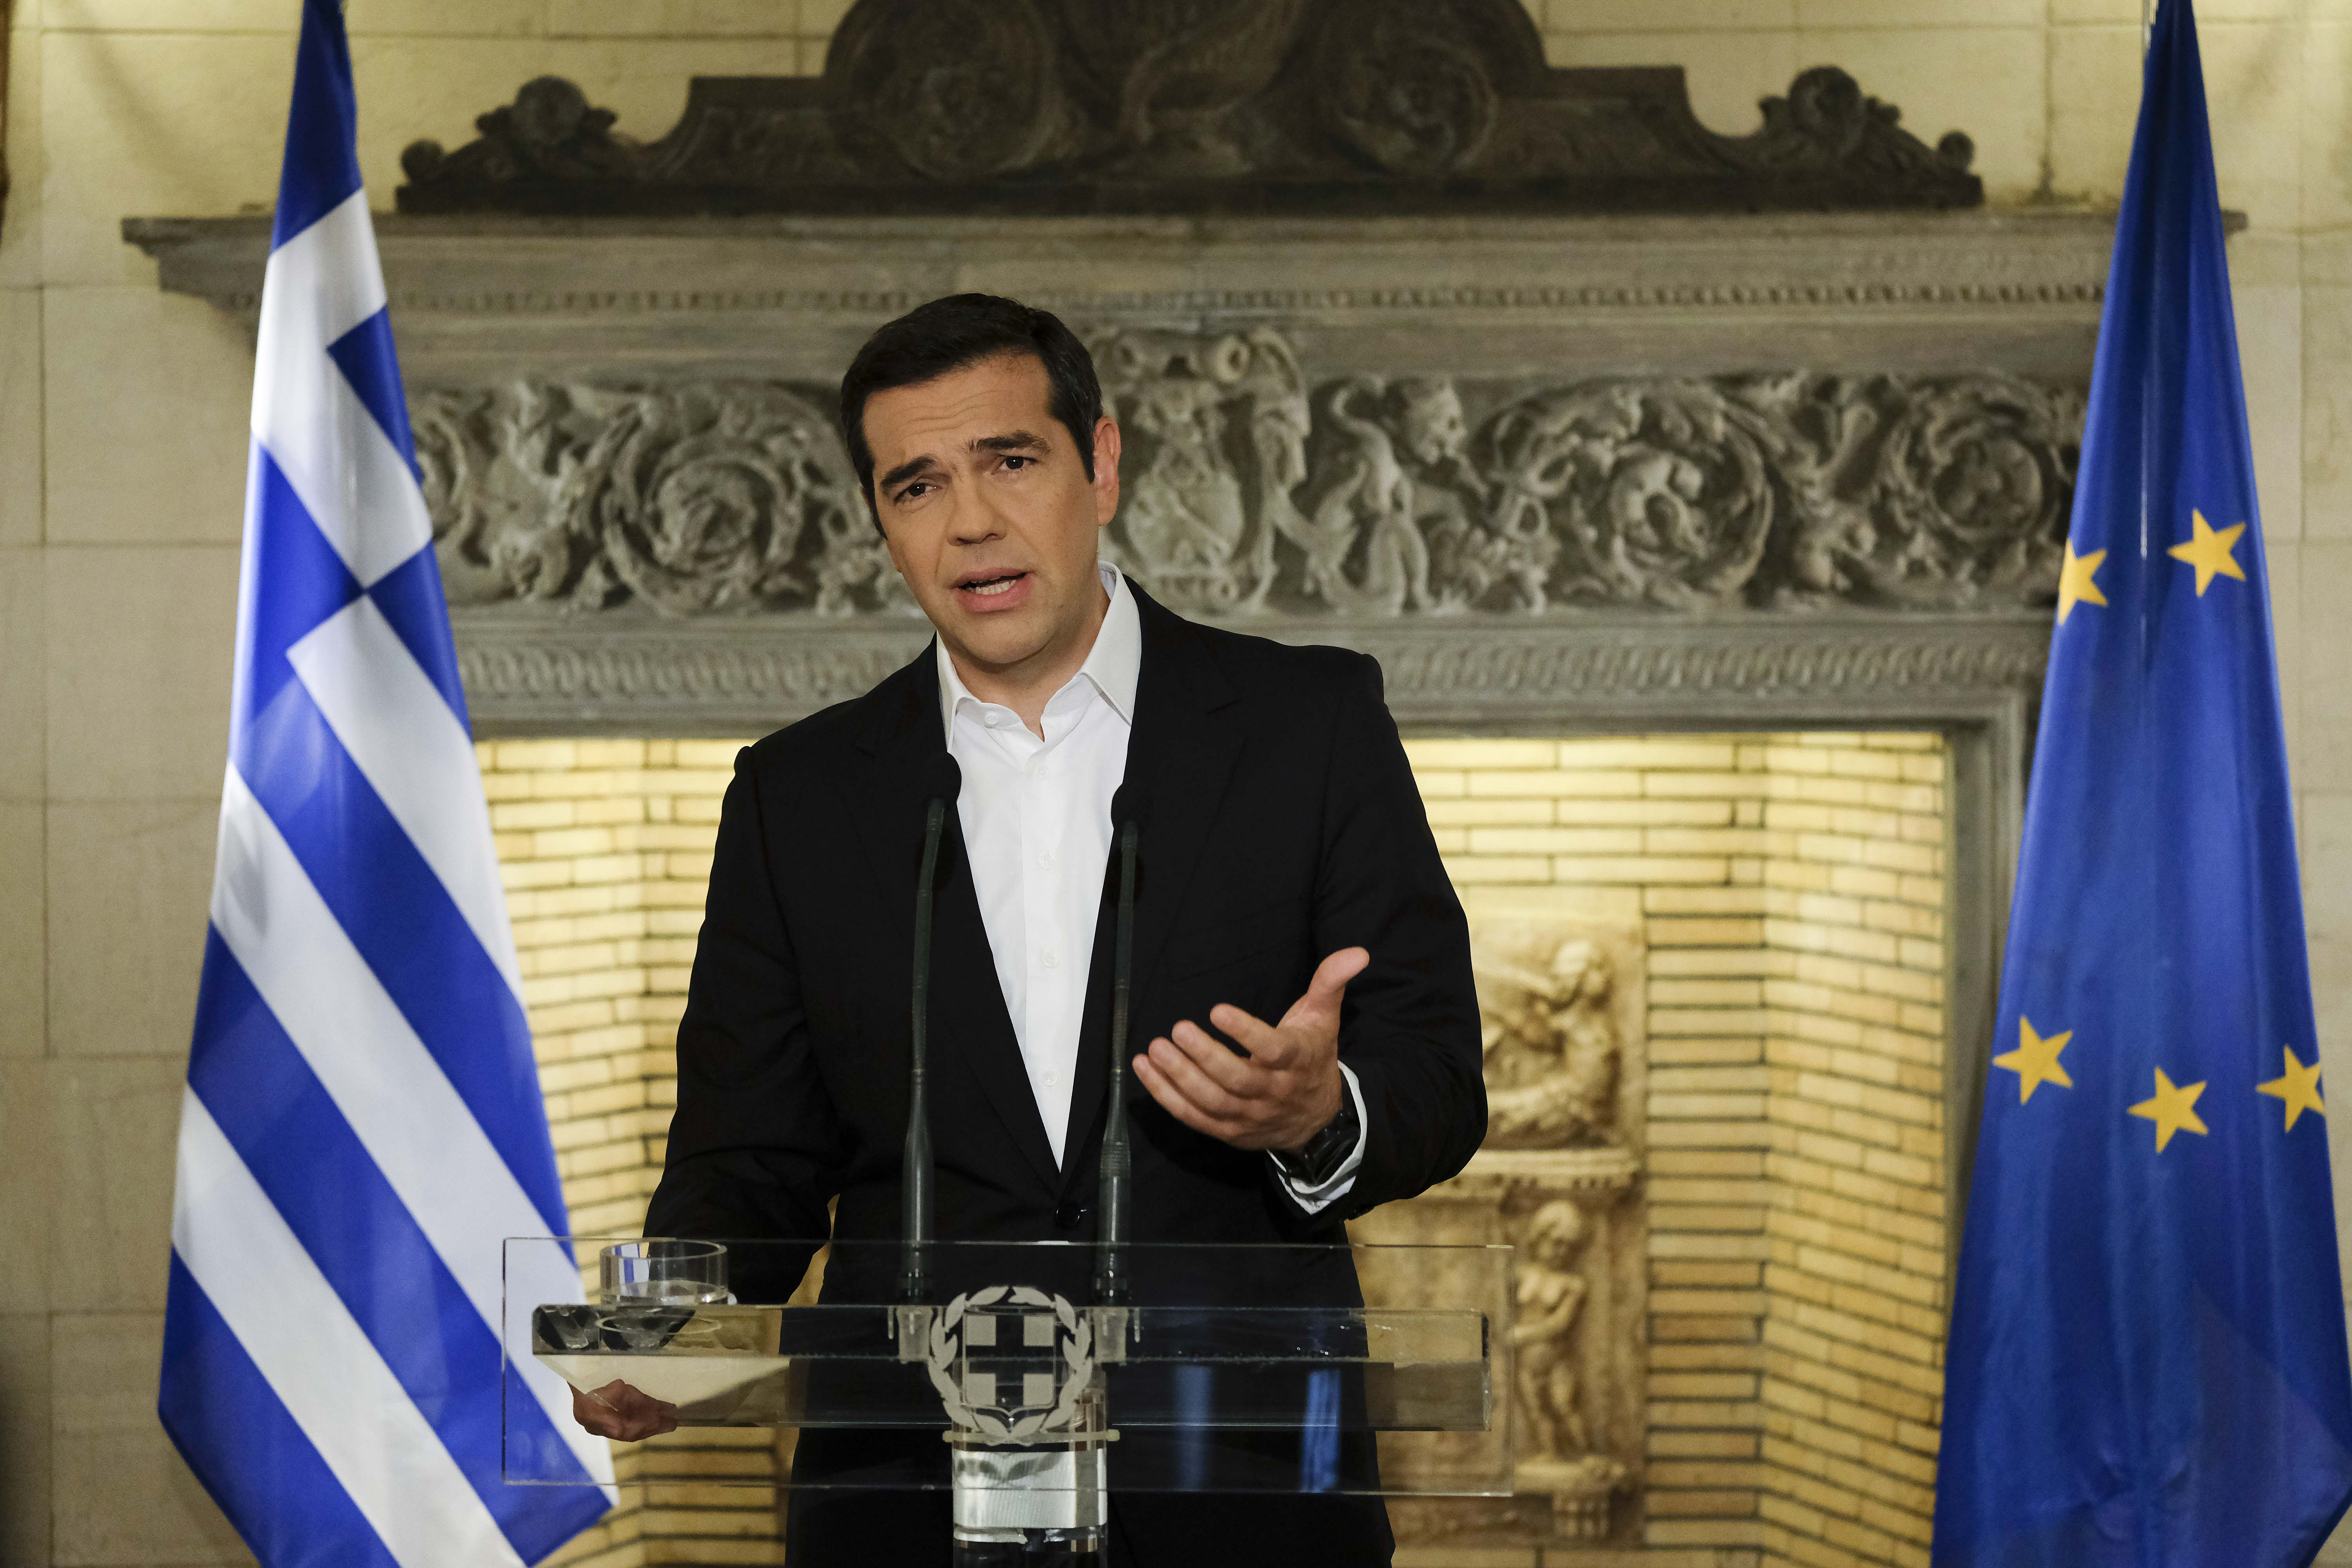 In this photo released by Greek Prime Minister's office, Greek Prime Minister Alexis Tsipras speaks during a televised address to the nation, in Athens,  June 12, 2018.